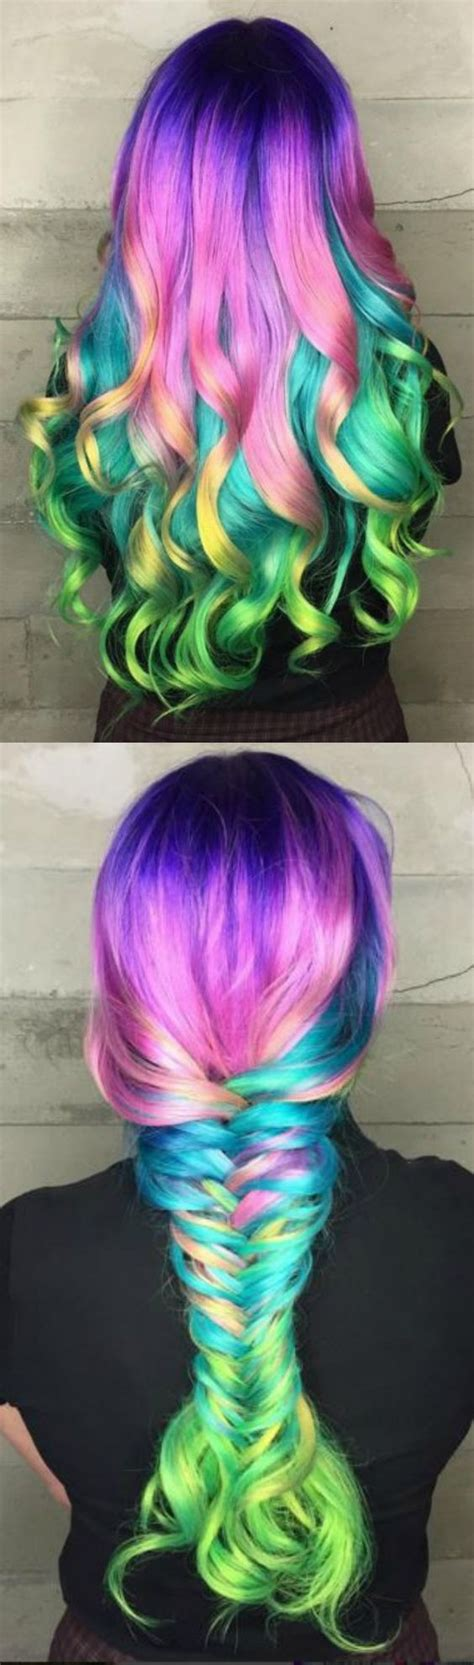 mermaid colored hair pictures photos and images for